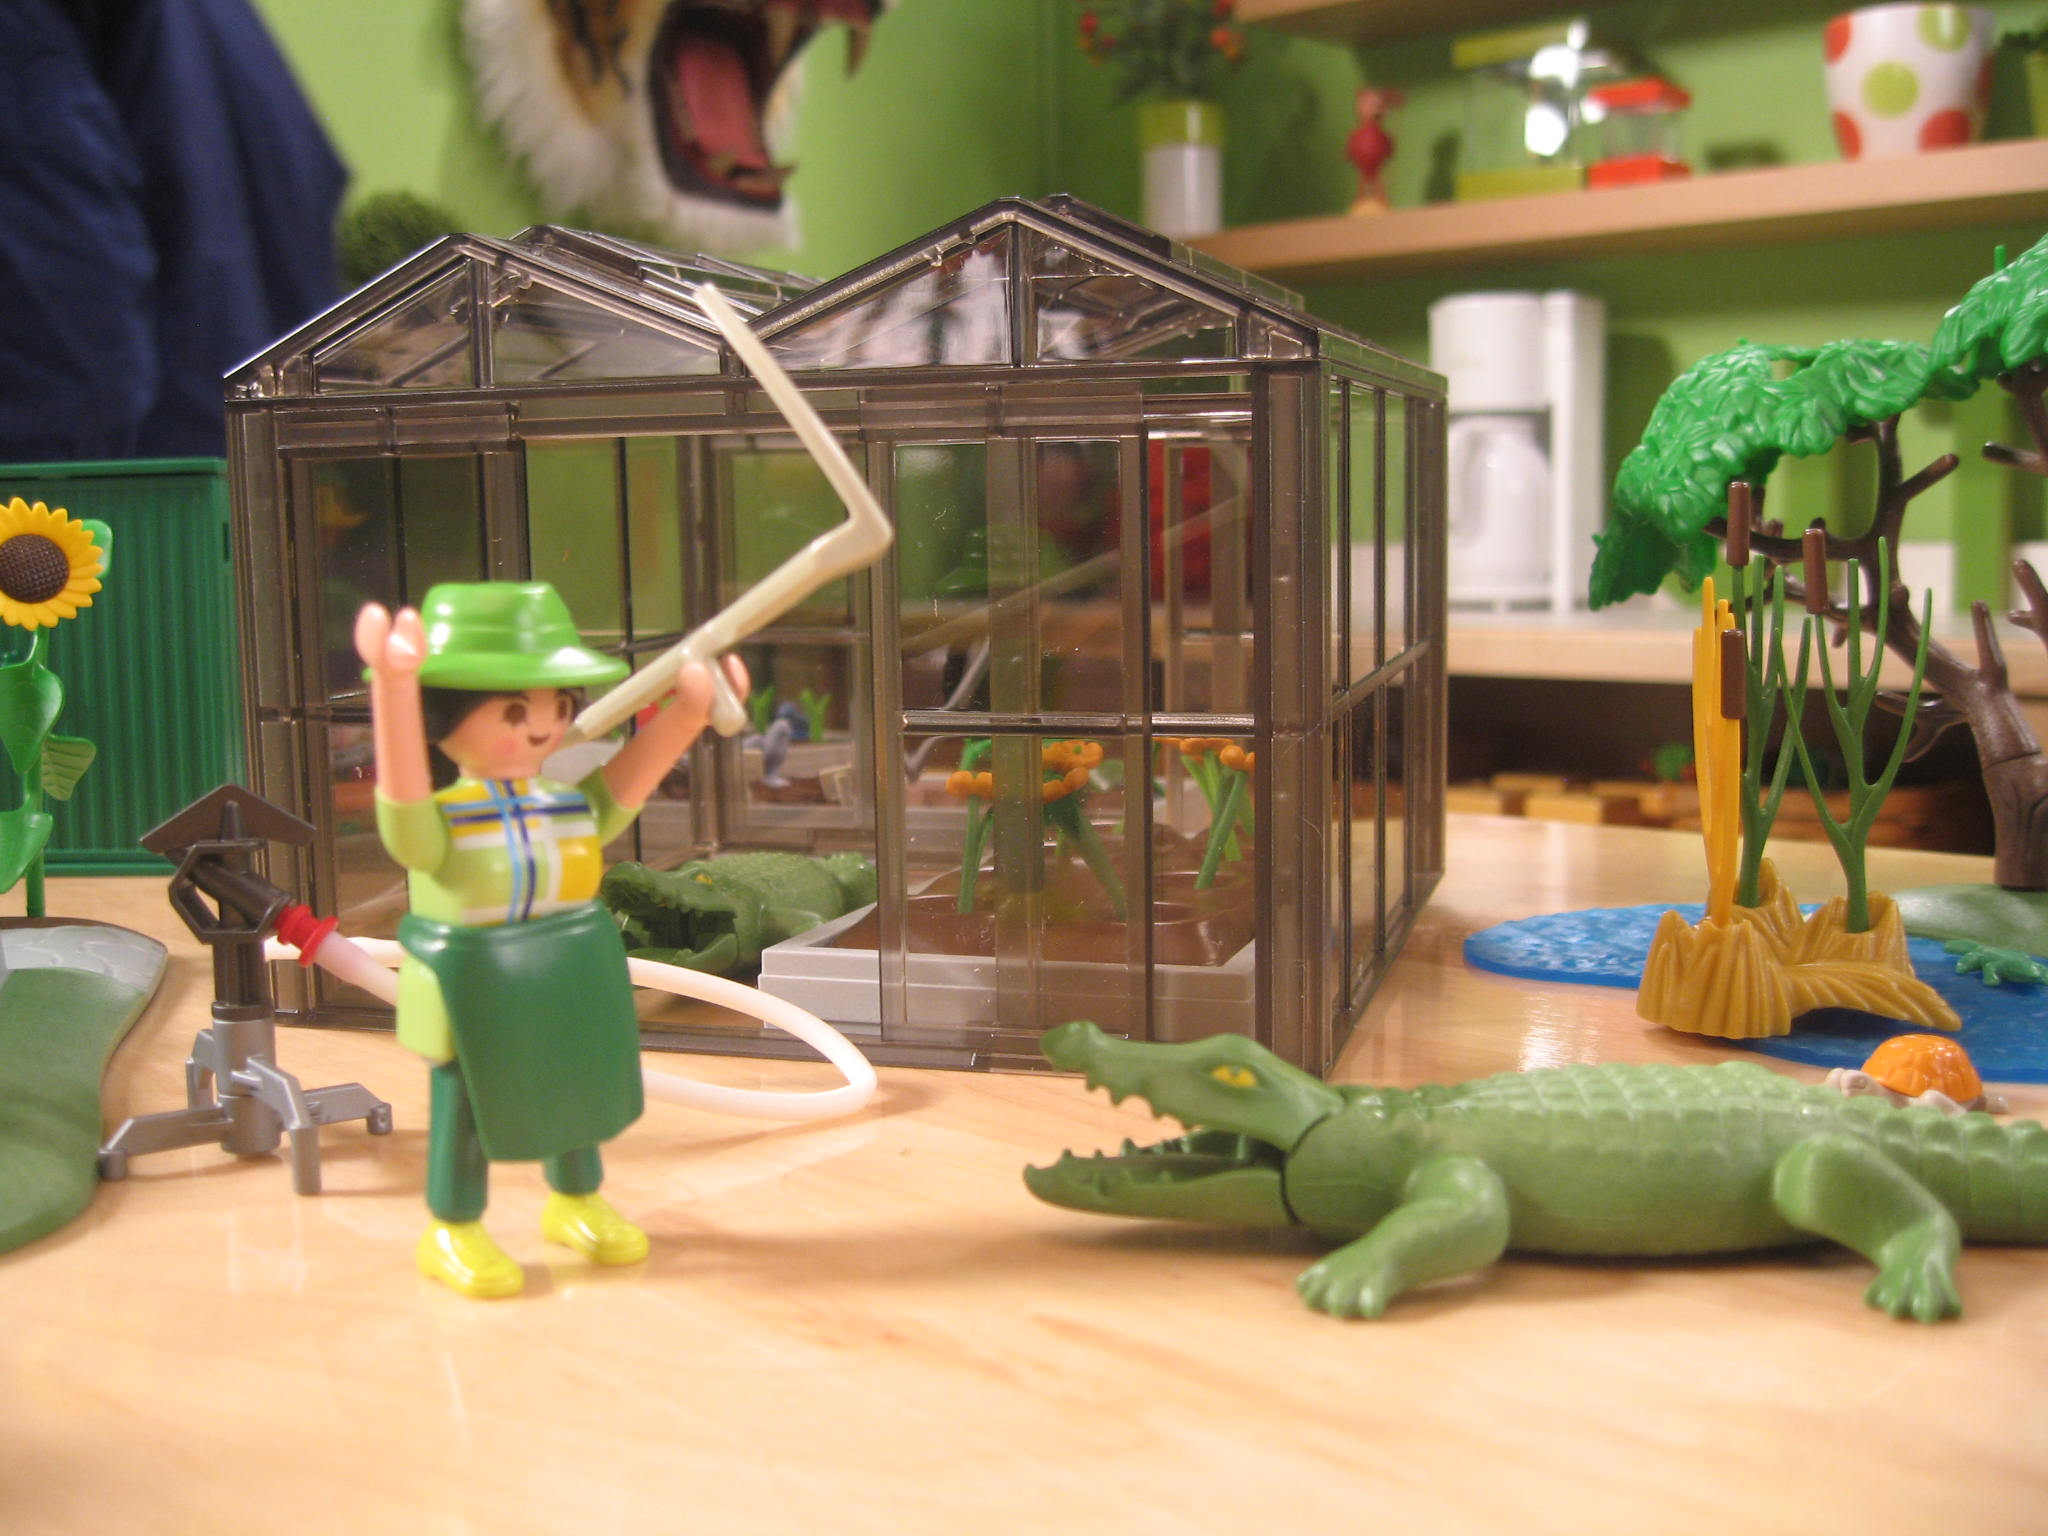 My Grandpa used to keep alligators in the greenhouse when I was a kid!